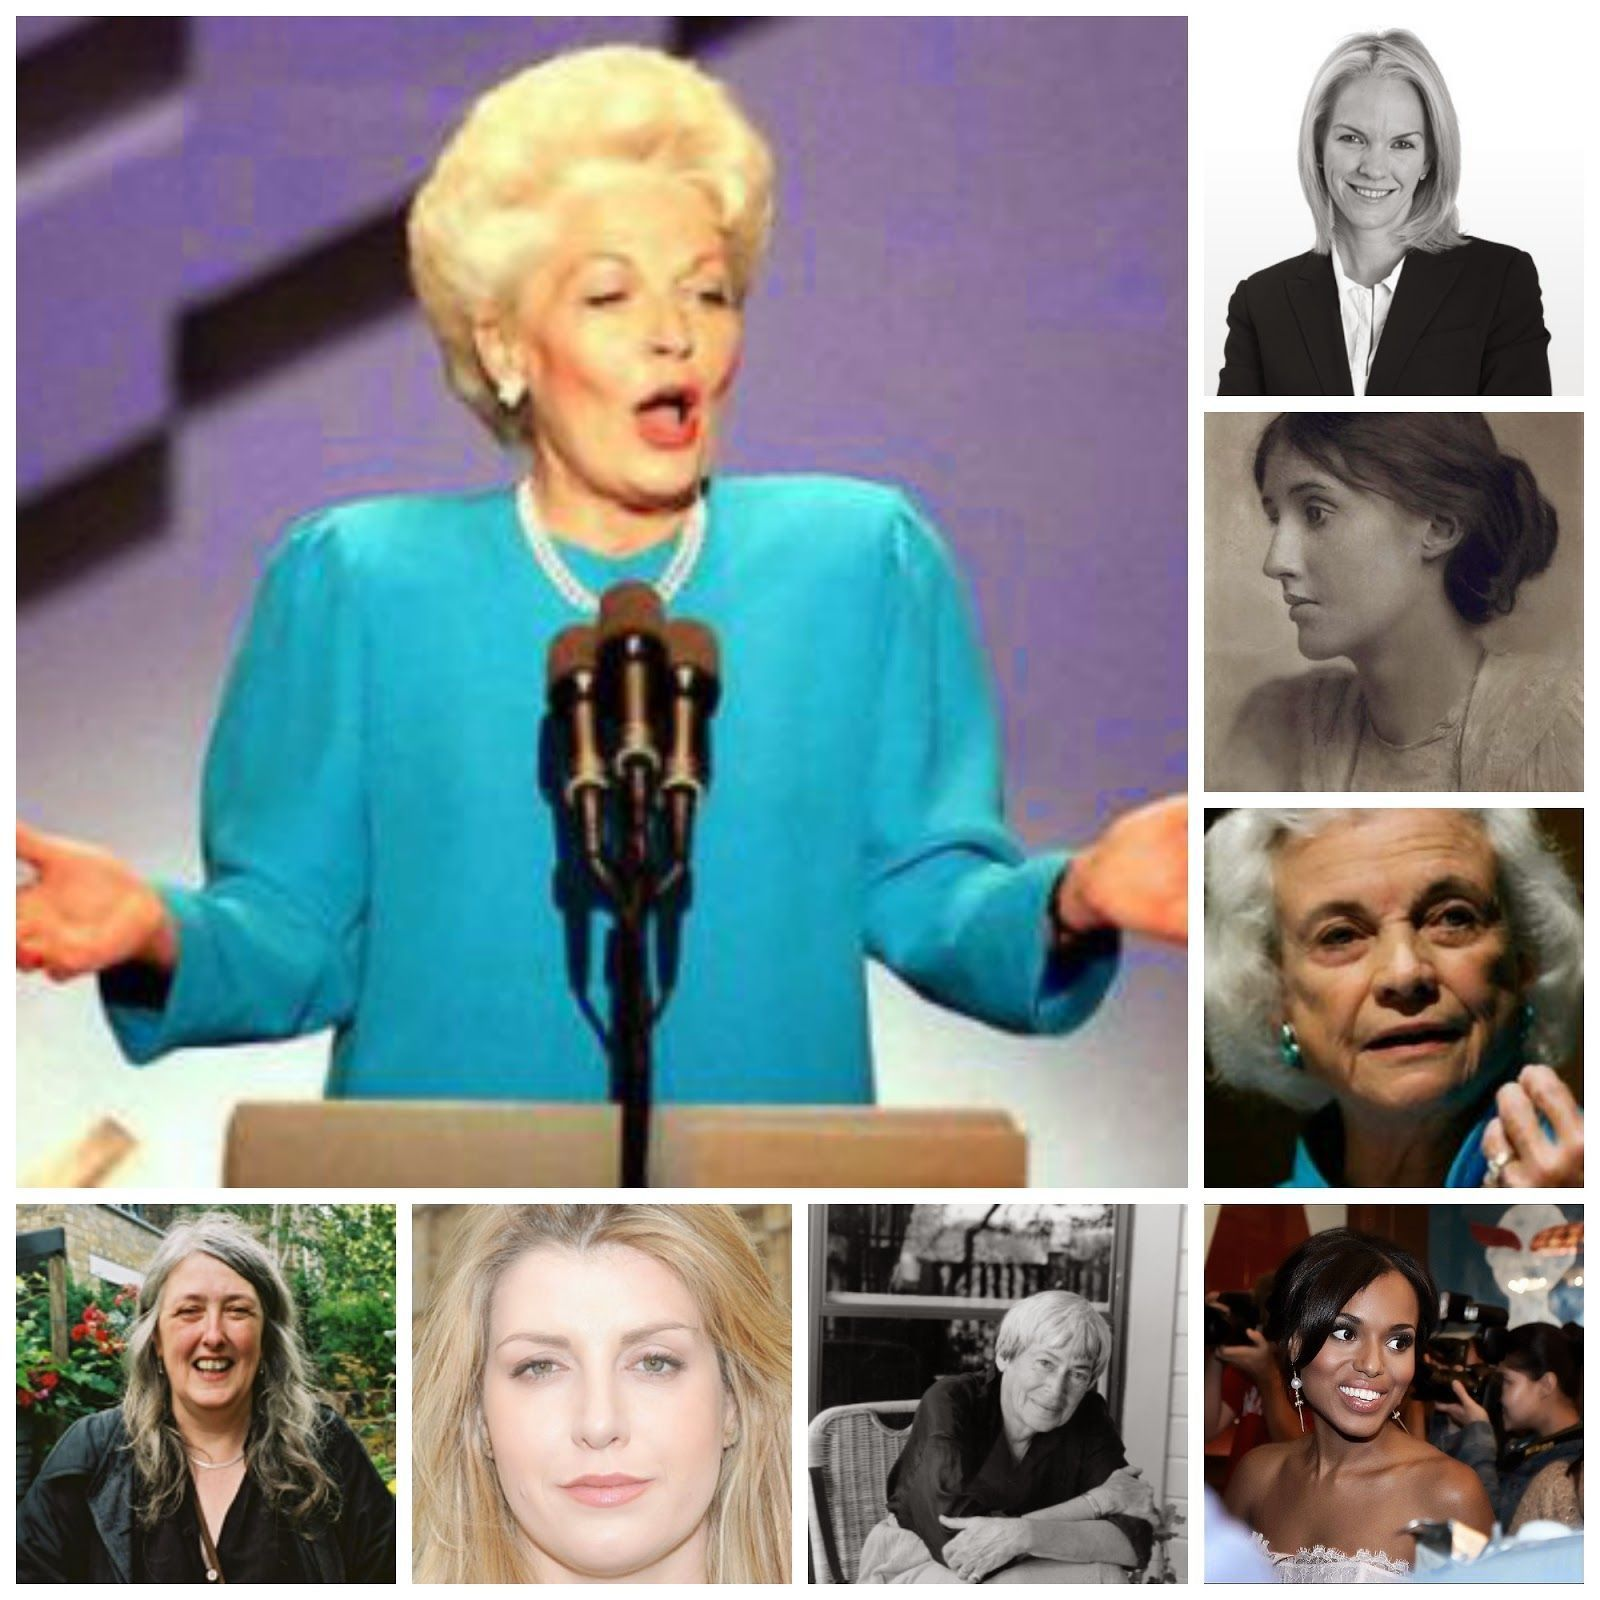 The Eloquent Woman: 8 famous speeches by women speakers about (yes) women speakers #famousspeeches The Eloquent Woman: 8 famous speeches by women speakers about (yes) women speakers #famousspeeches The Eloquent Woman: 8 famous speeches by women speakers about (yes) women speakers #famousspeeches The Eloquent Woman: 8 famous speeches by women speakers about (yes) women speakers #famousspeeches